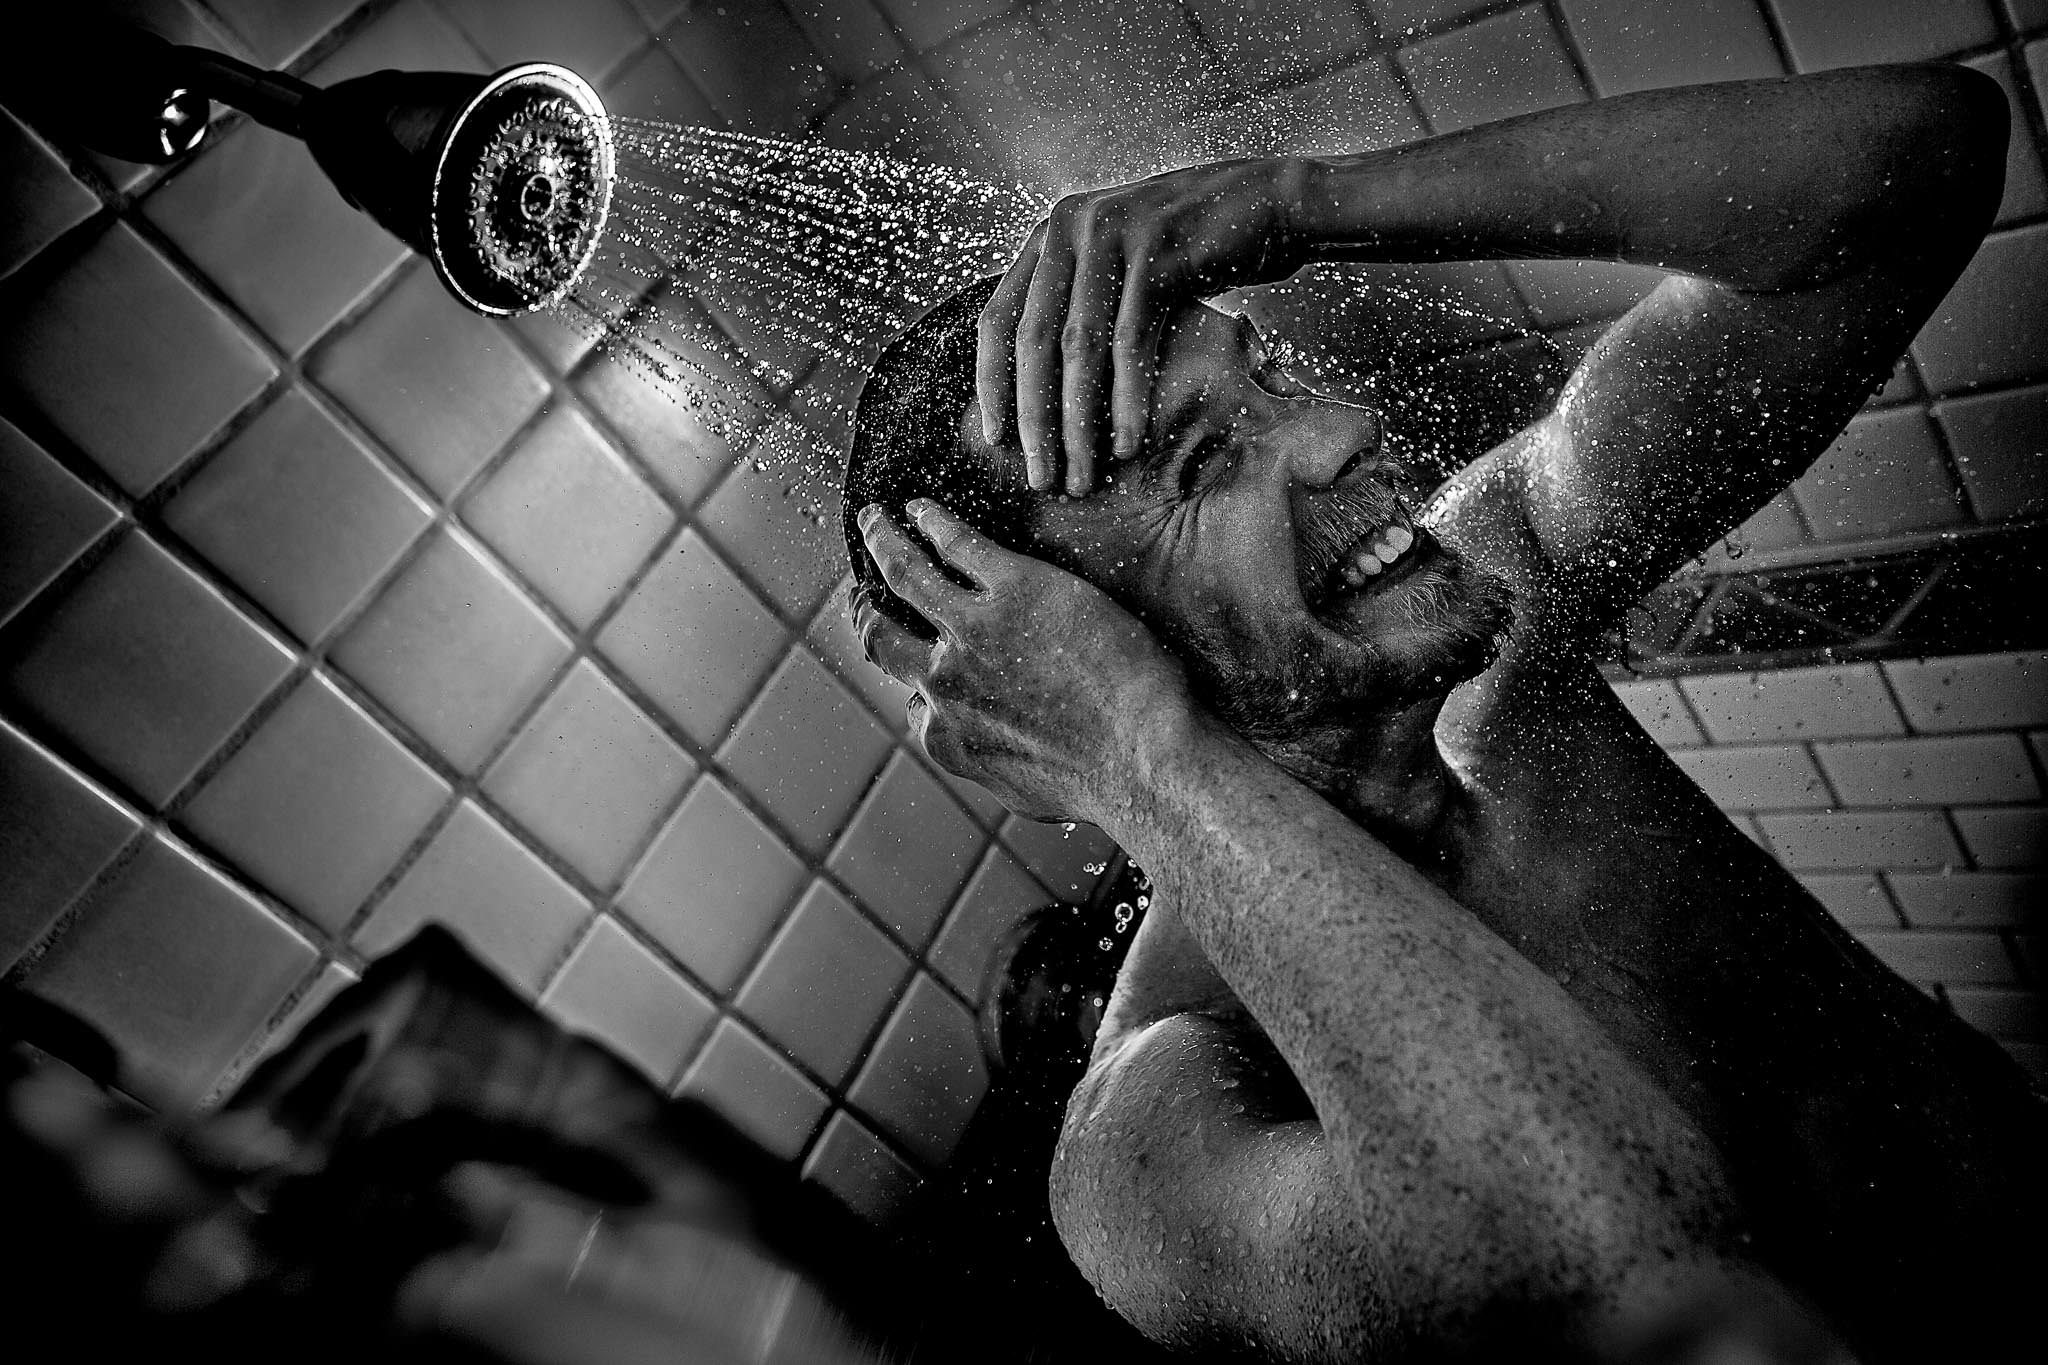 Groom getting ready with splashes under the shower head at Timberline Lodge